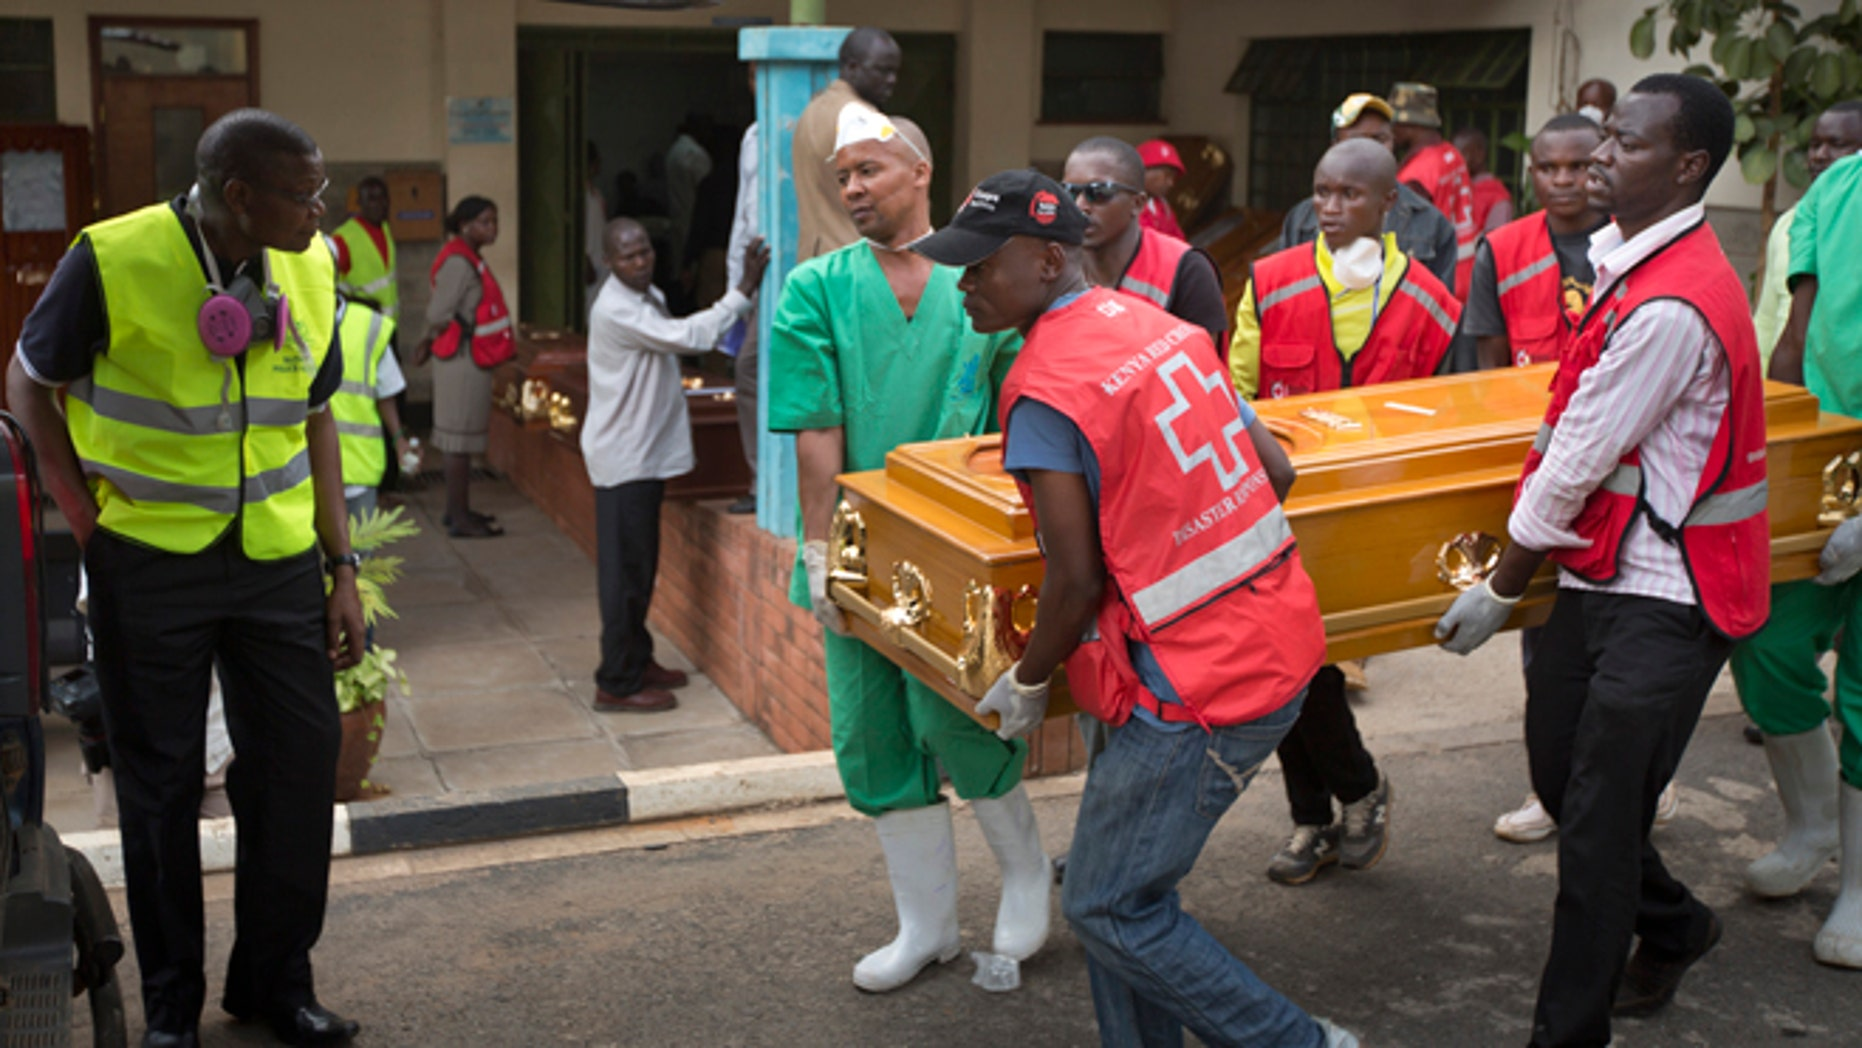 April 8, 2015: Morgue workers and Red Cross staff help to carry out the coffin of student Mildred Yondo, who was killed in last week's attack by extremist group Al-Shabasb at Garissa University, from the Chiromo Funeral Parlour in Nairobi, Kenya.